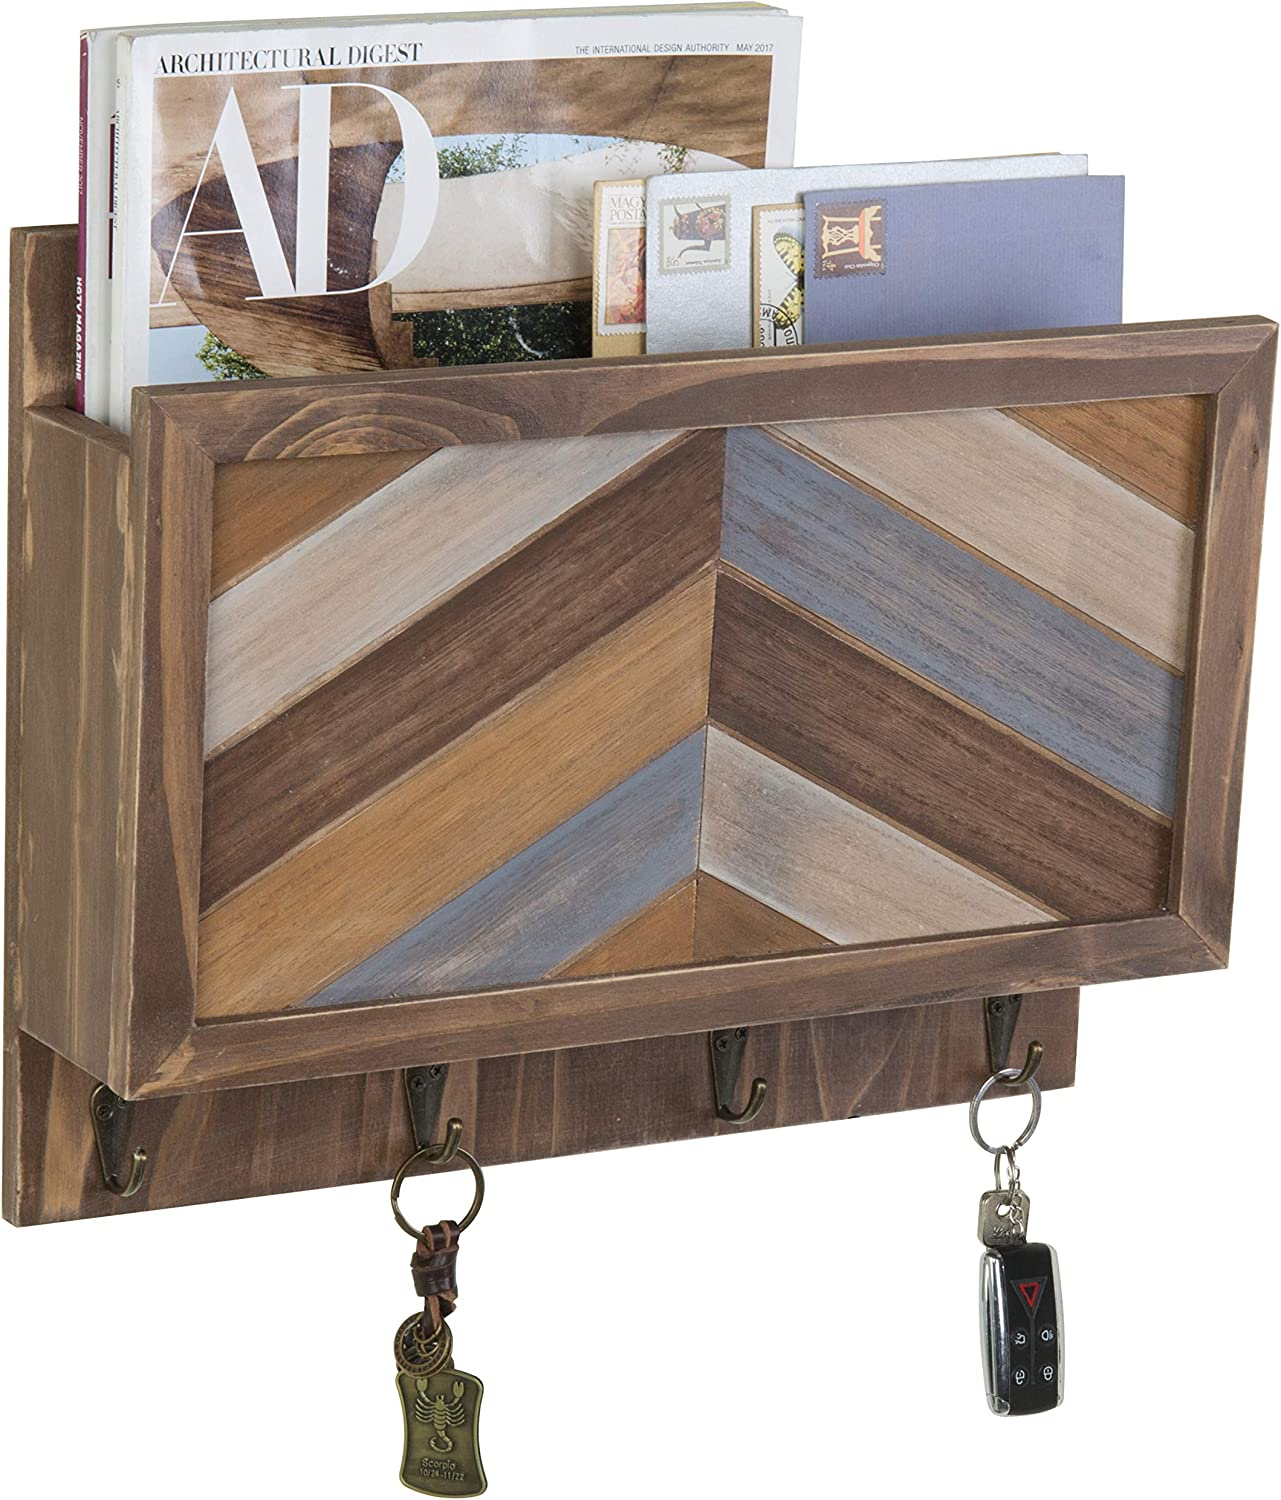 Brand new MyGift Rustic Chevron Wood Wall Mounted Entryway Organizer with Long-awaited